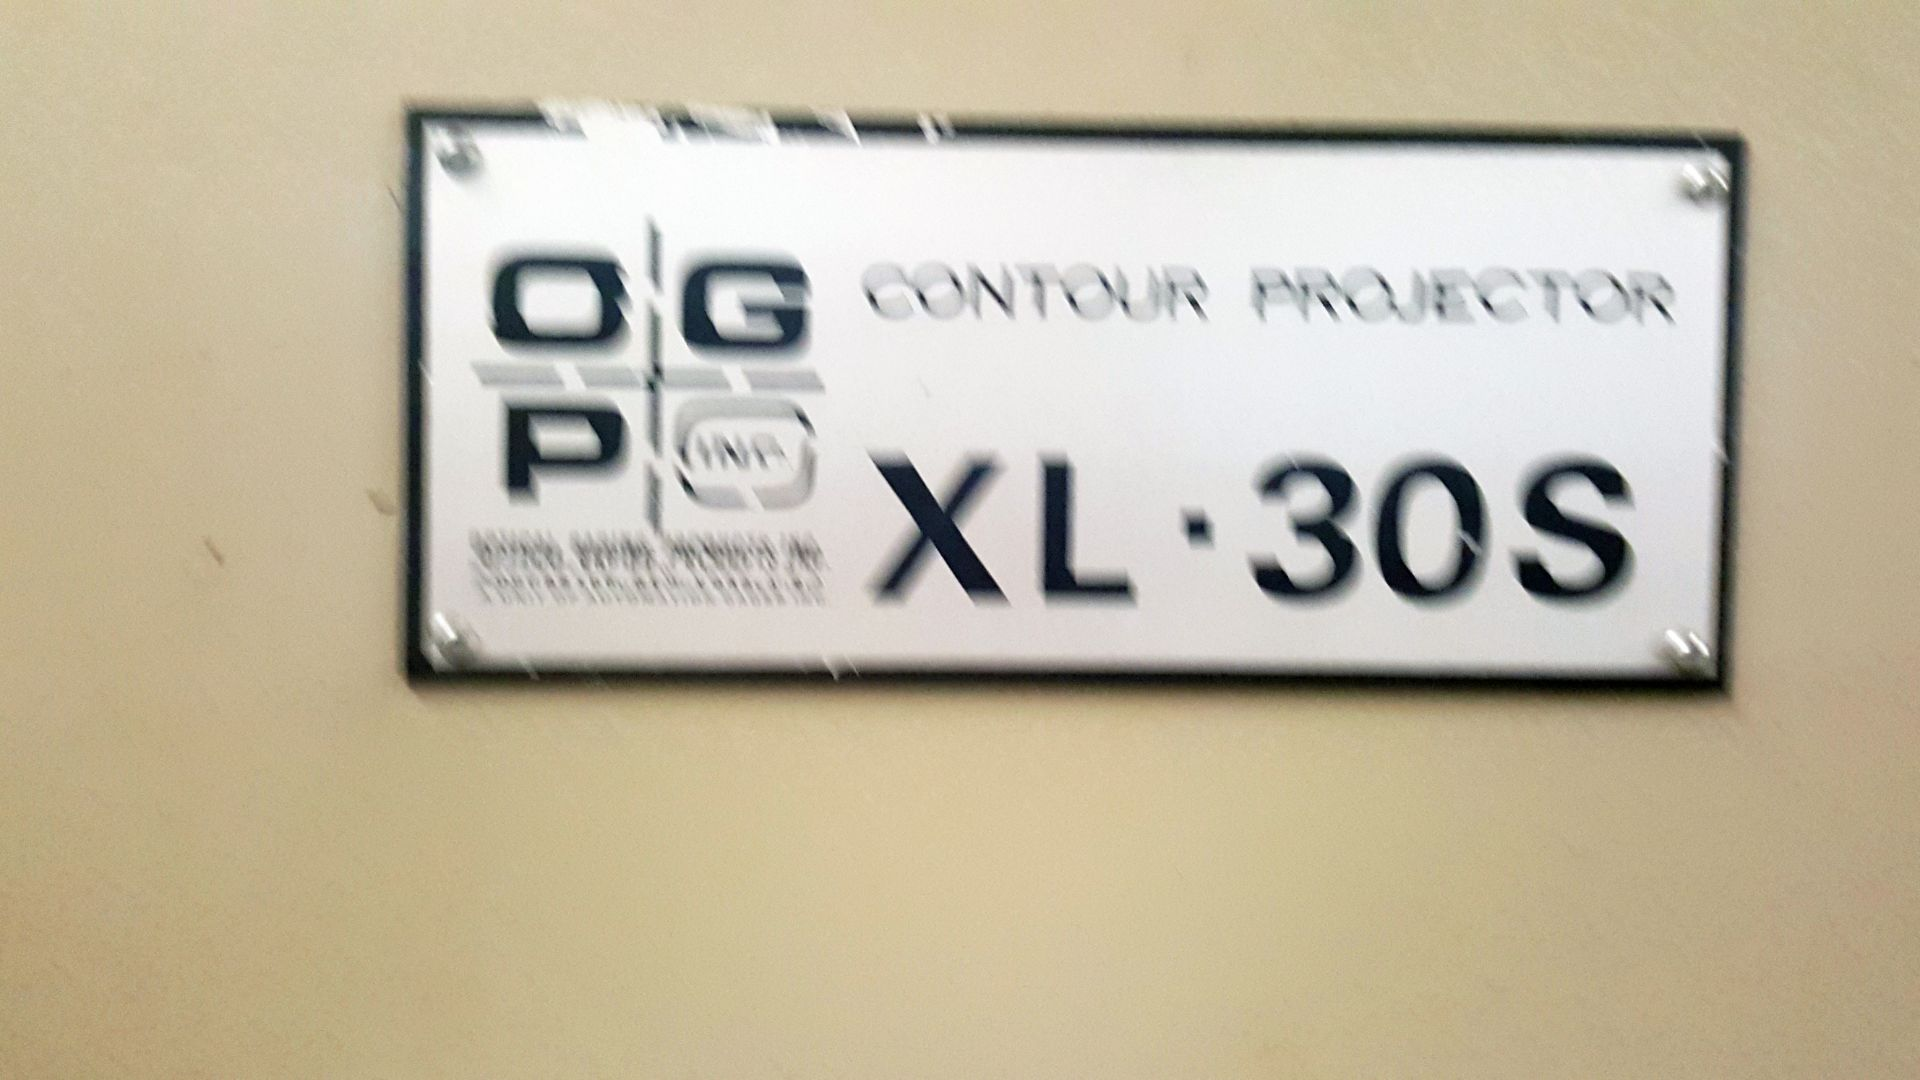 "OGP 30"" Optical Comparator Projector, Model IXL-827, XL30S, S/N 8270292, under power - Image 6 of 8"